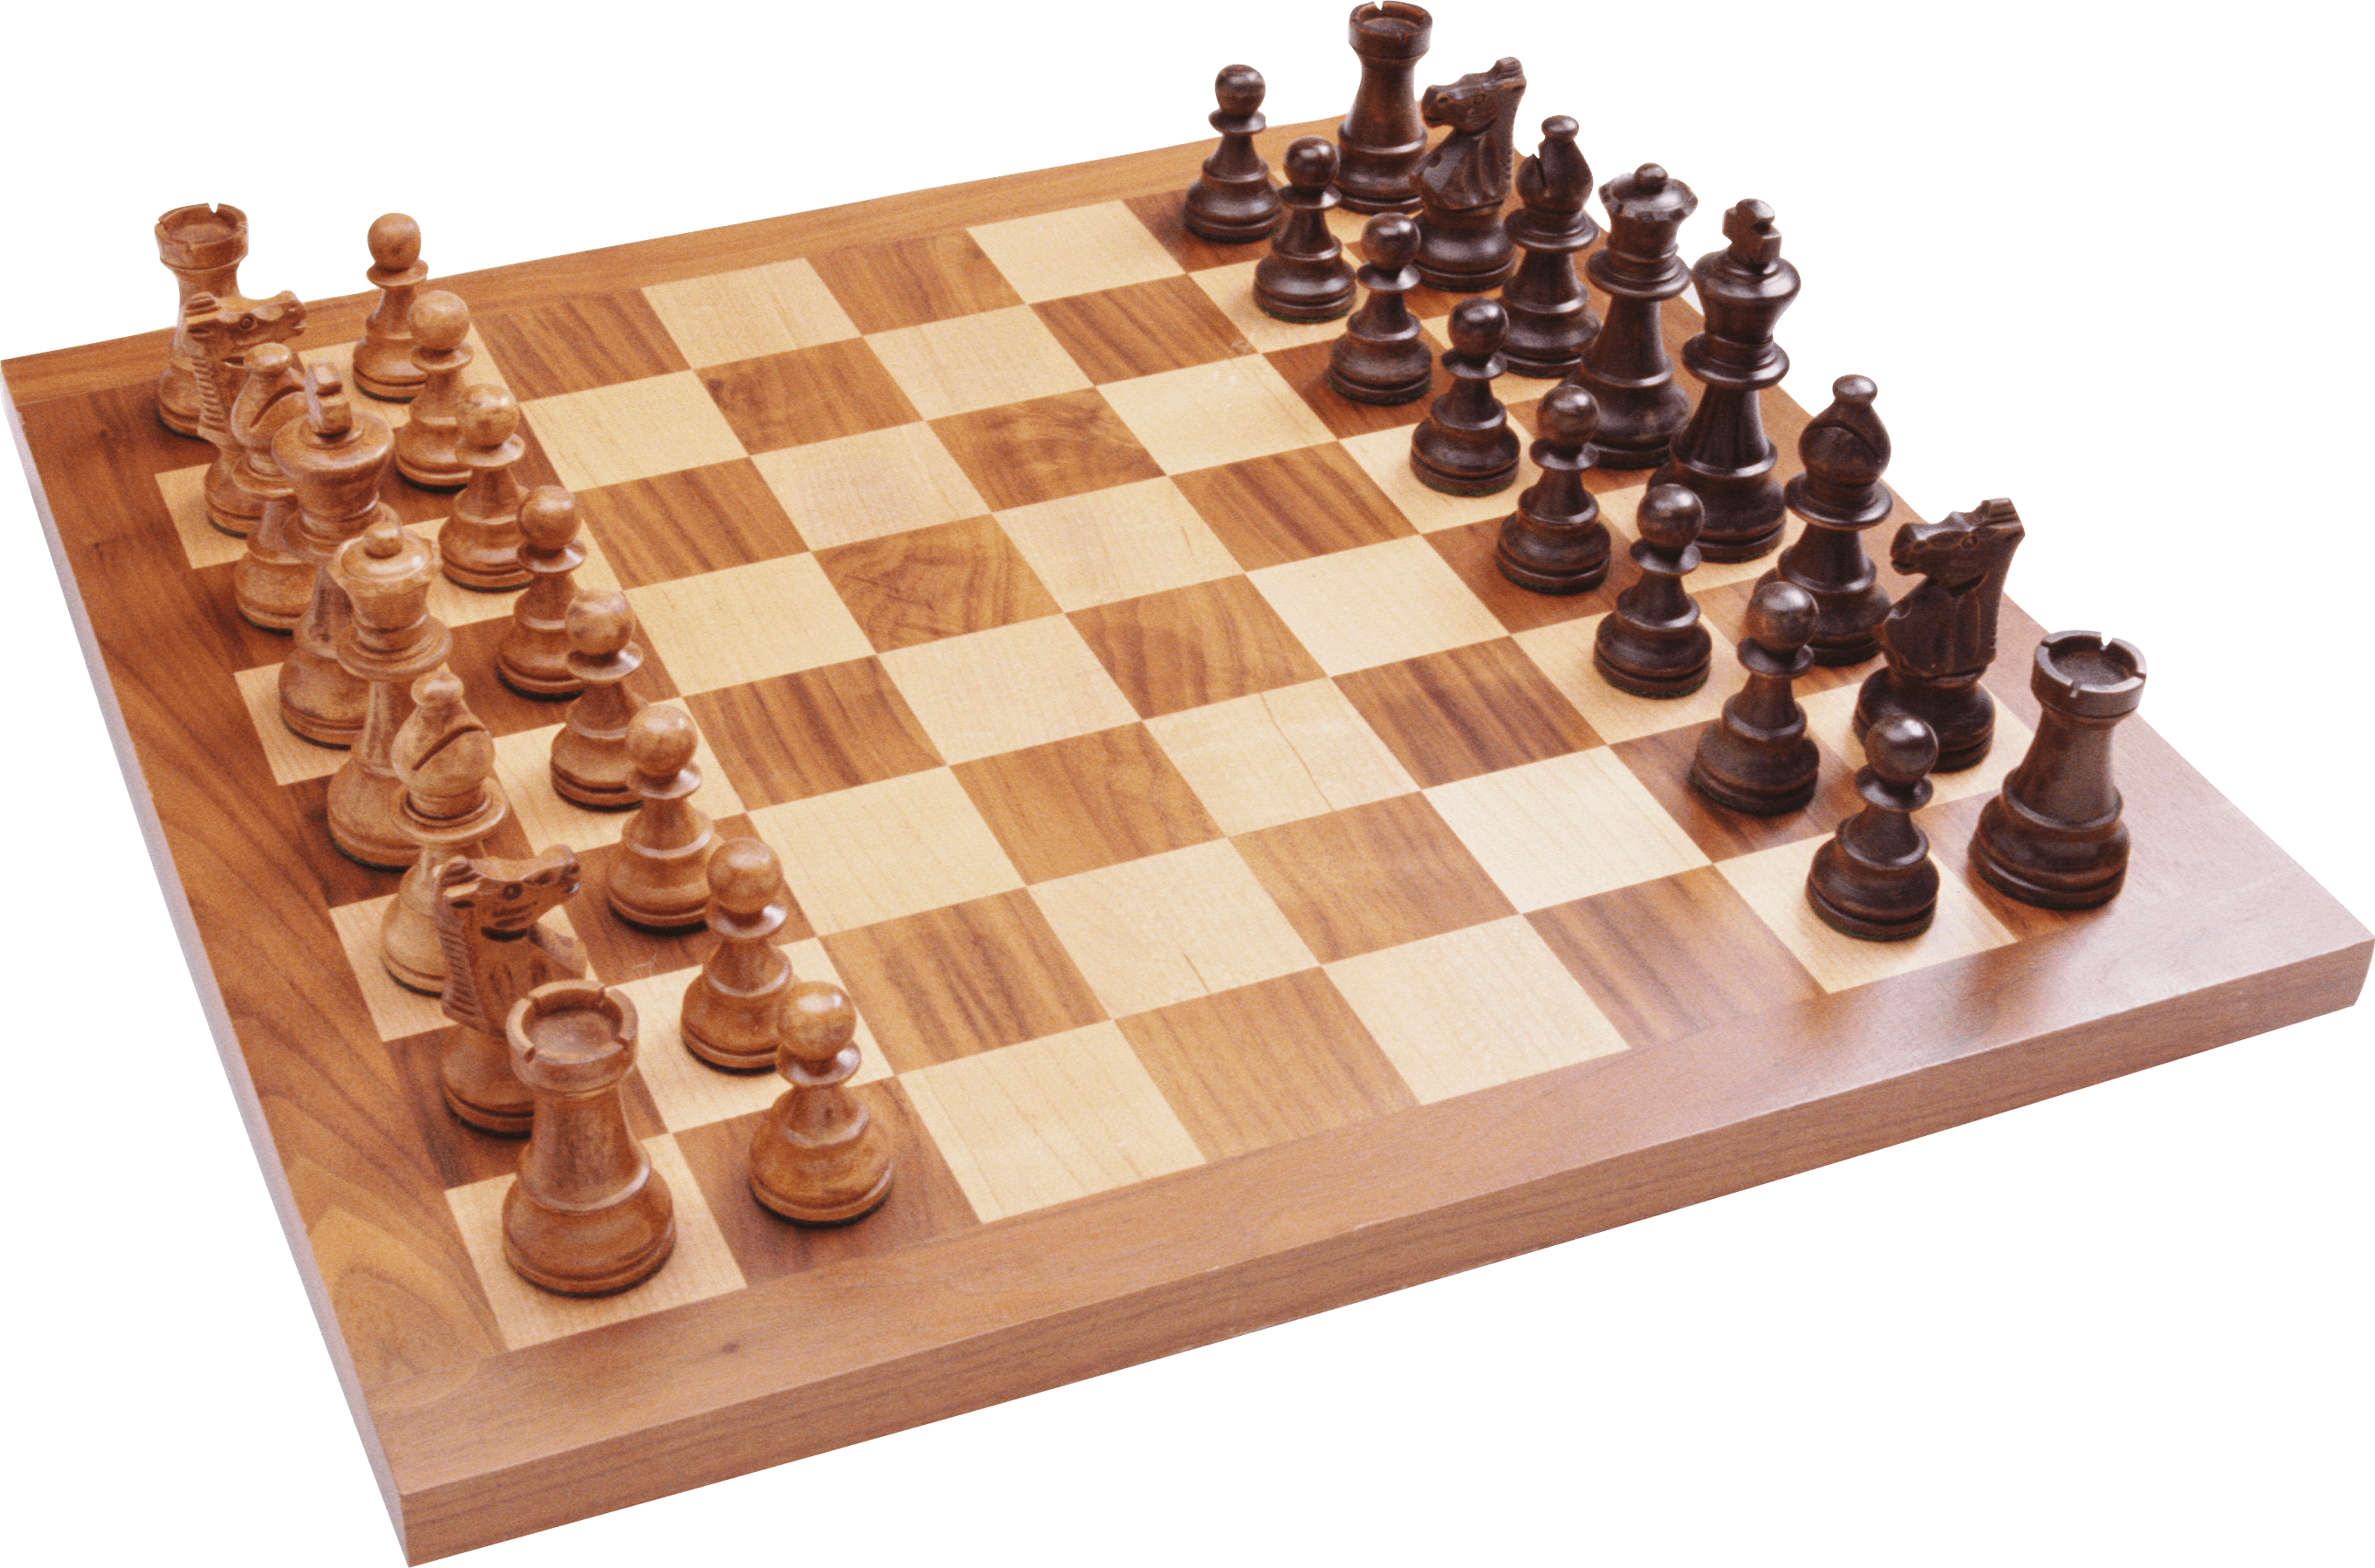 Chess board transparent png. Game clipart table game